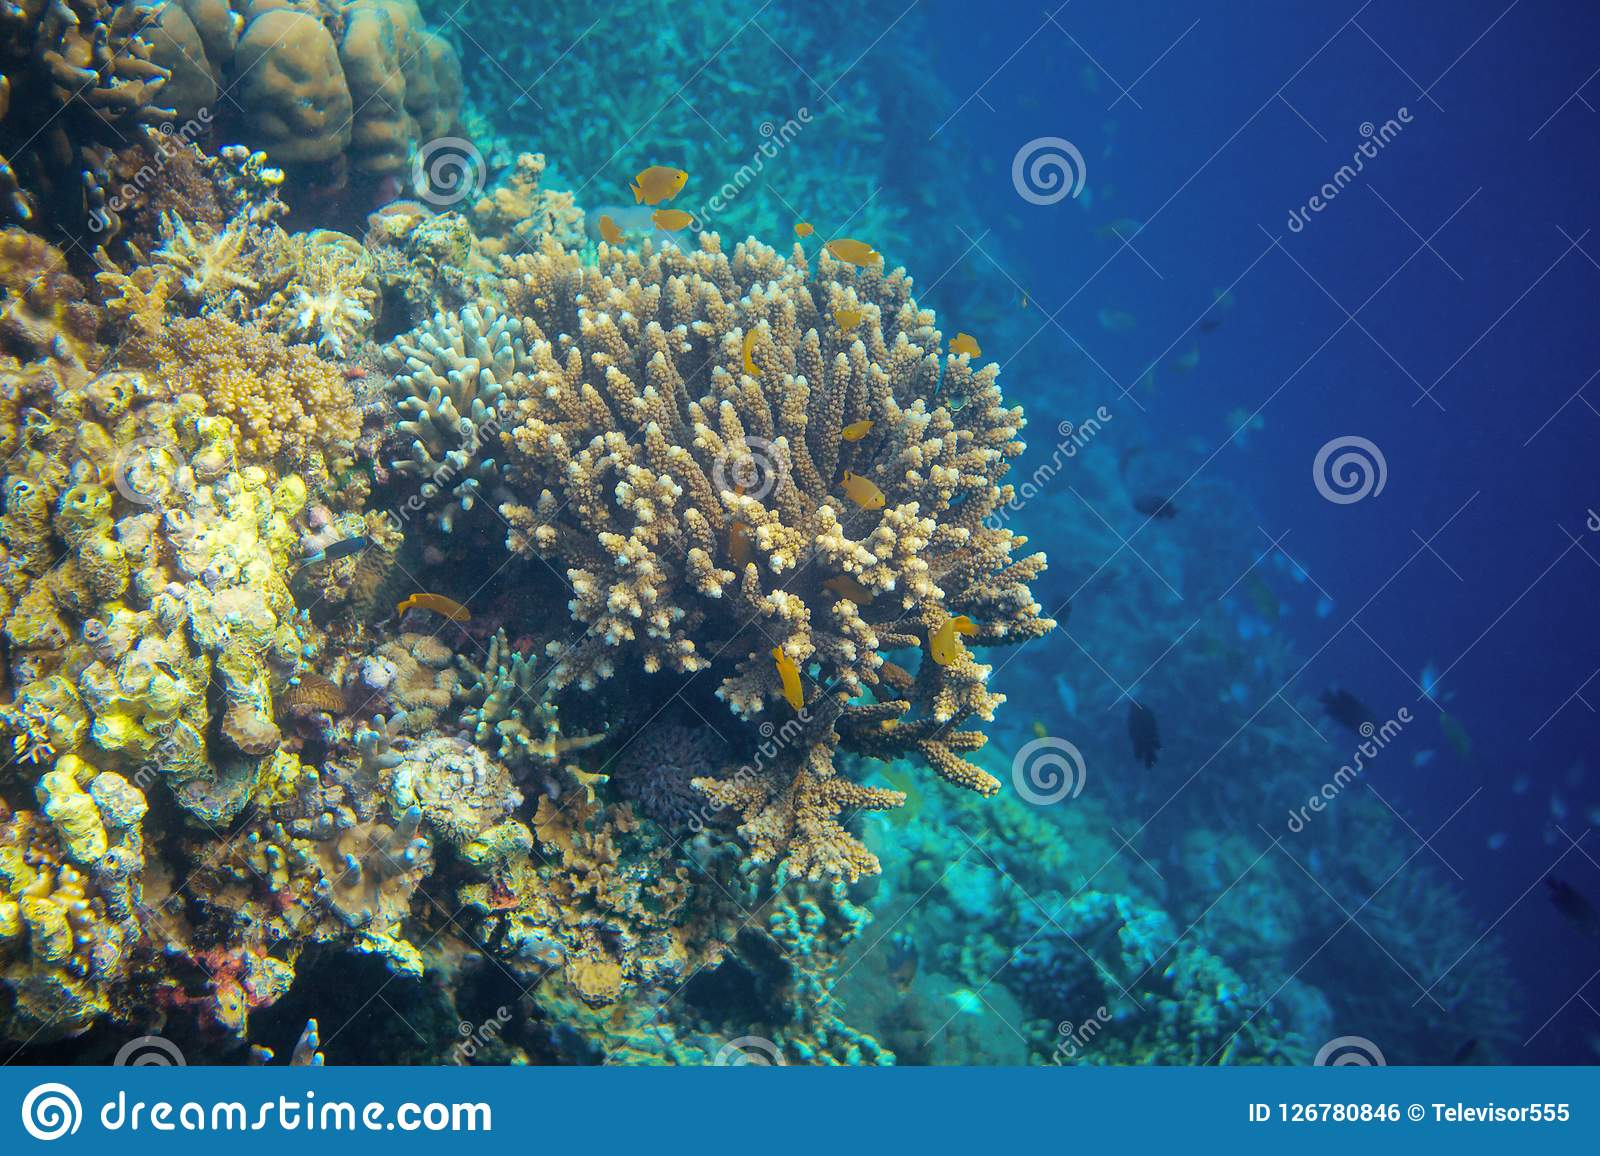 Underwater Landscape With Coral Fish Yellow Tropical Fish In